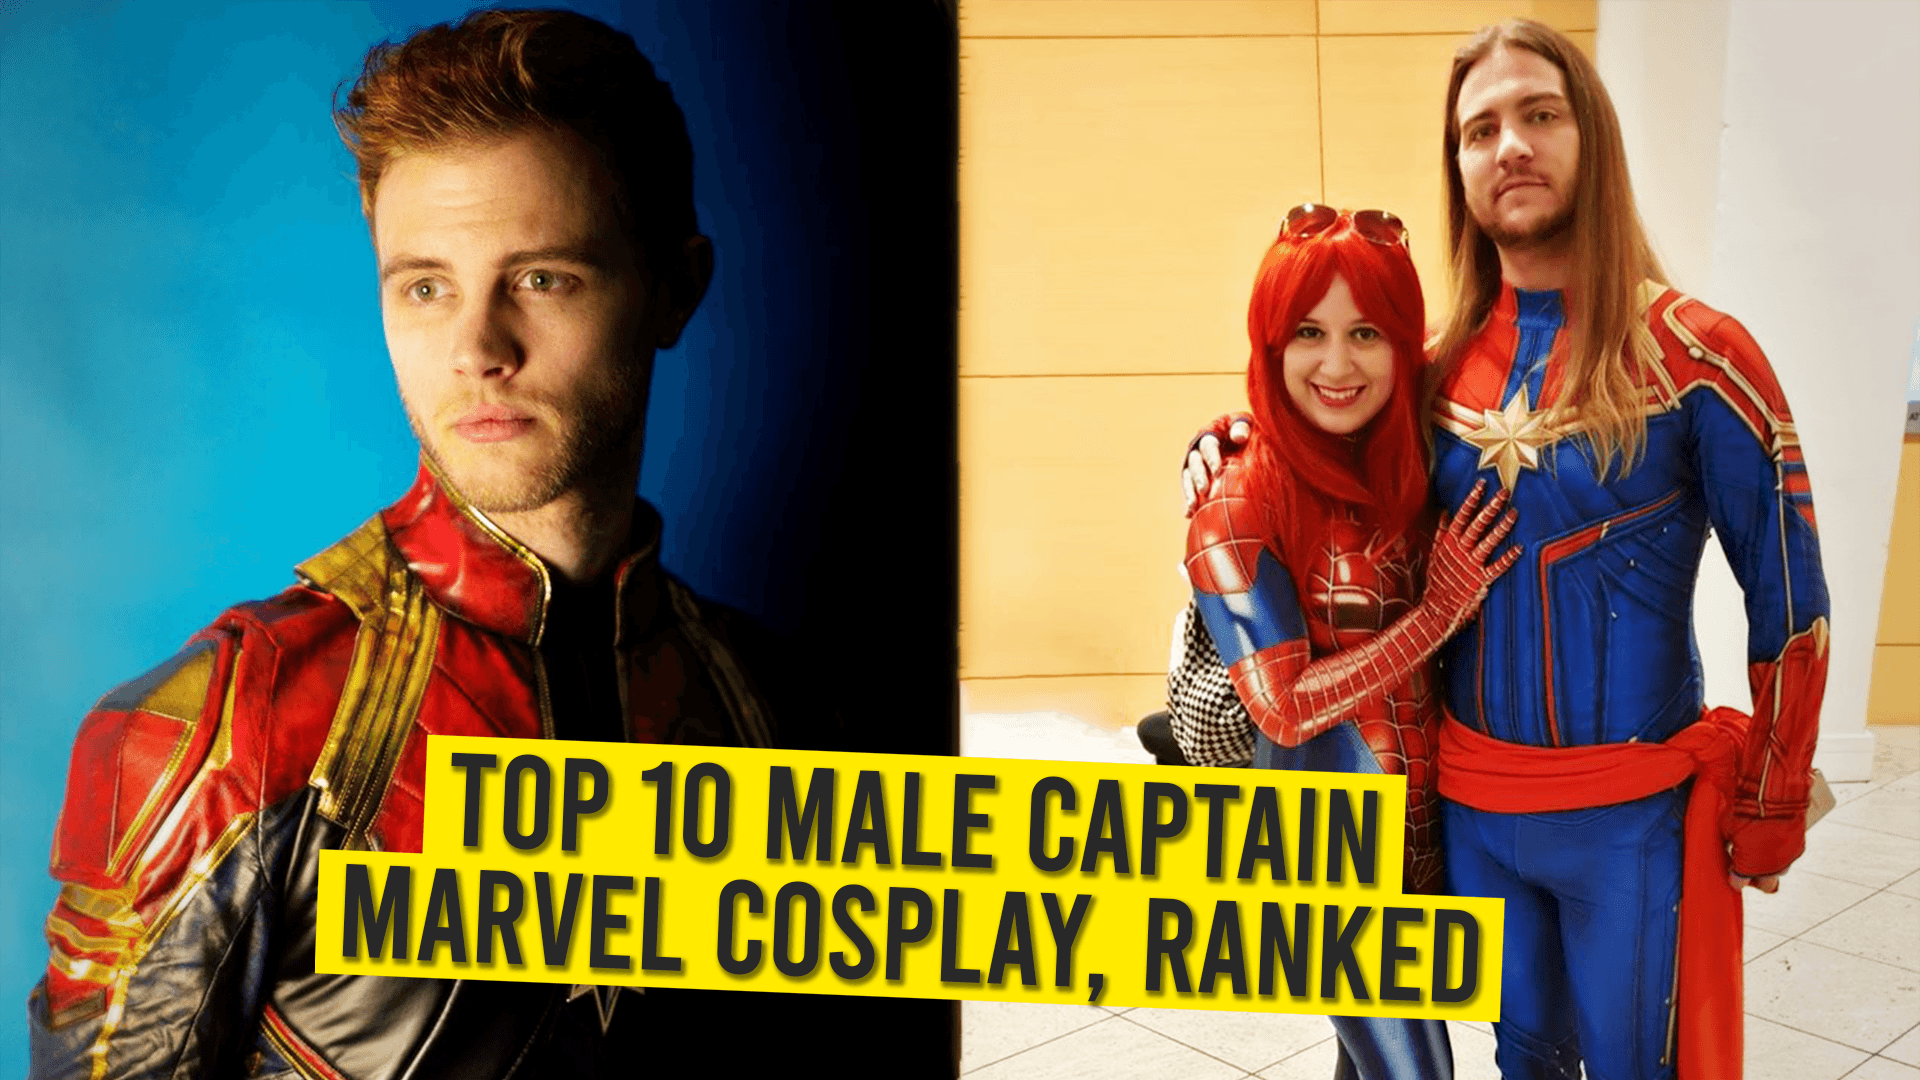 Top 10 Male Captain Marvel Cosplay Ranked Animated Times Buy marvel costumes, become a new hero in the life of a certain character. top 10 male captain marvel cosplay